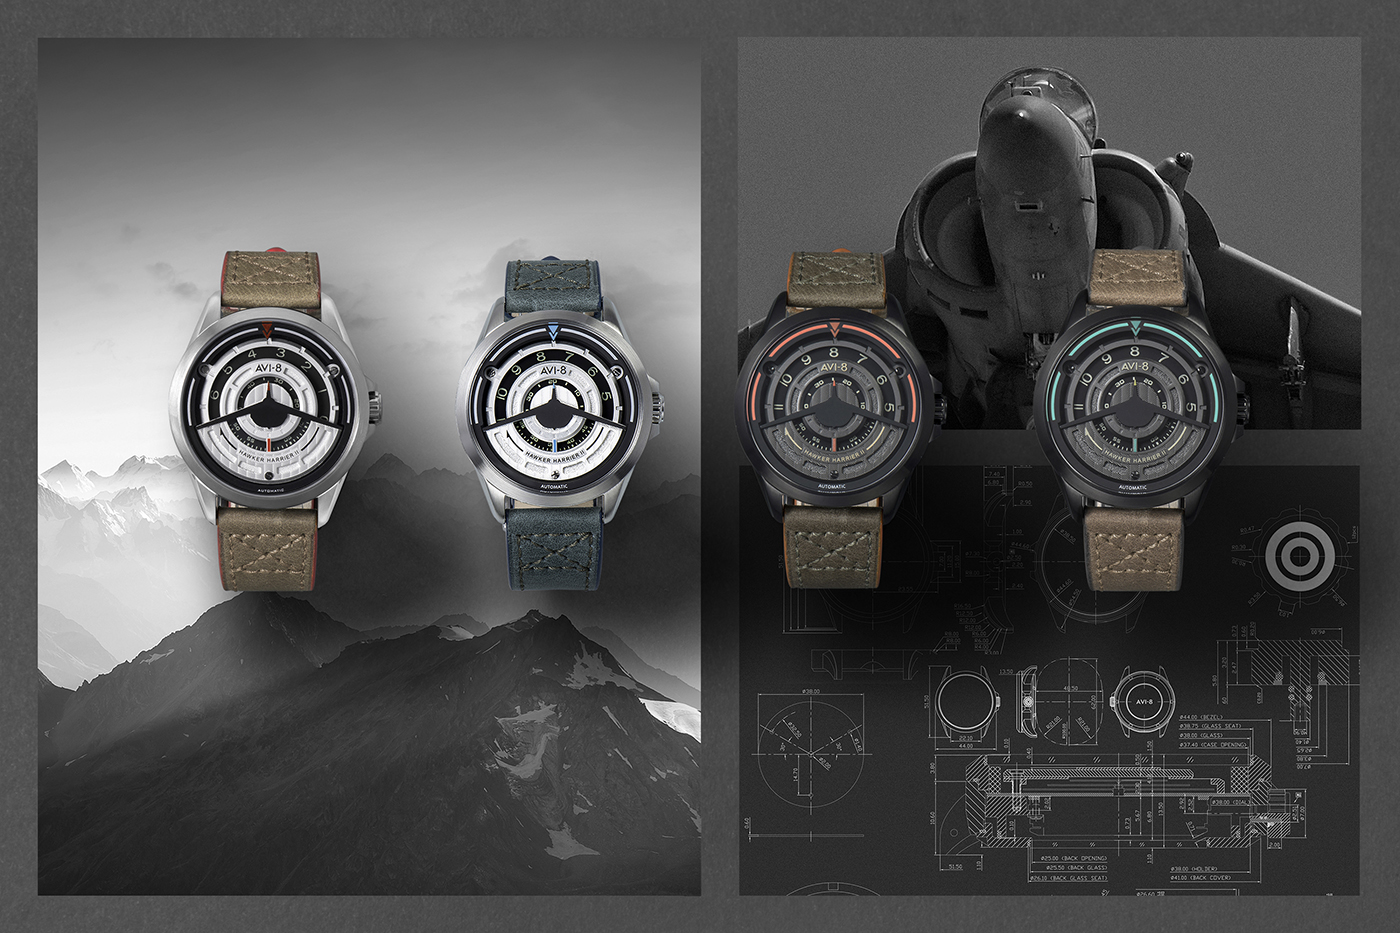 Some of the varieties of AVI-8's AV 4047 timepiece.